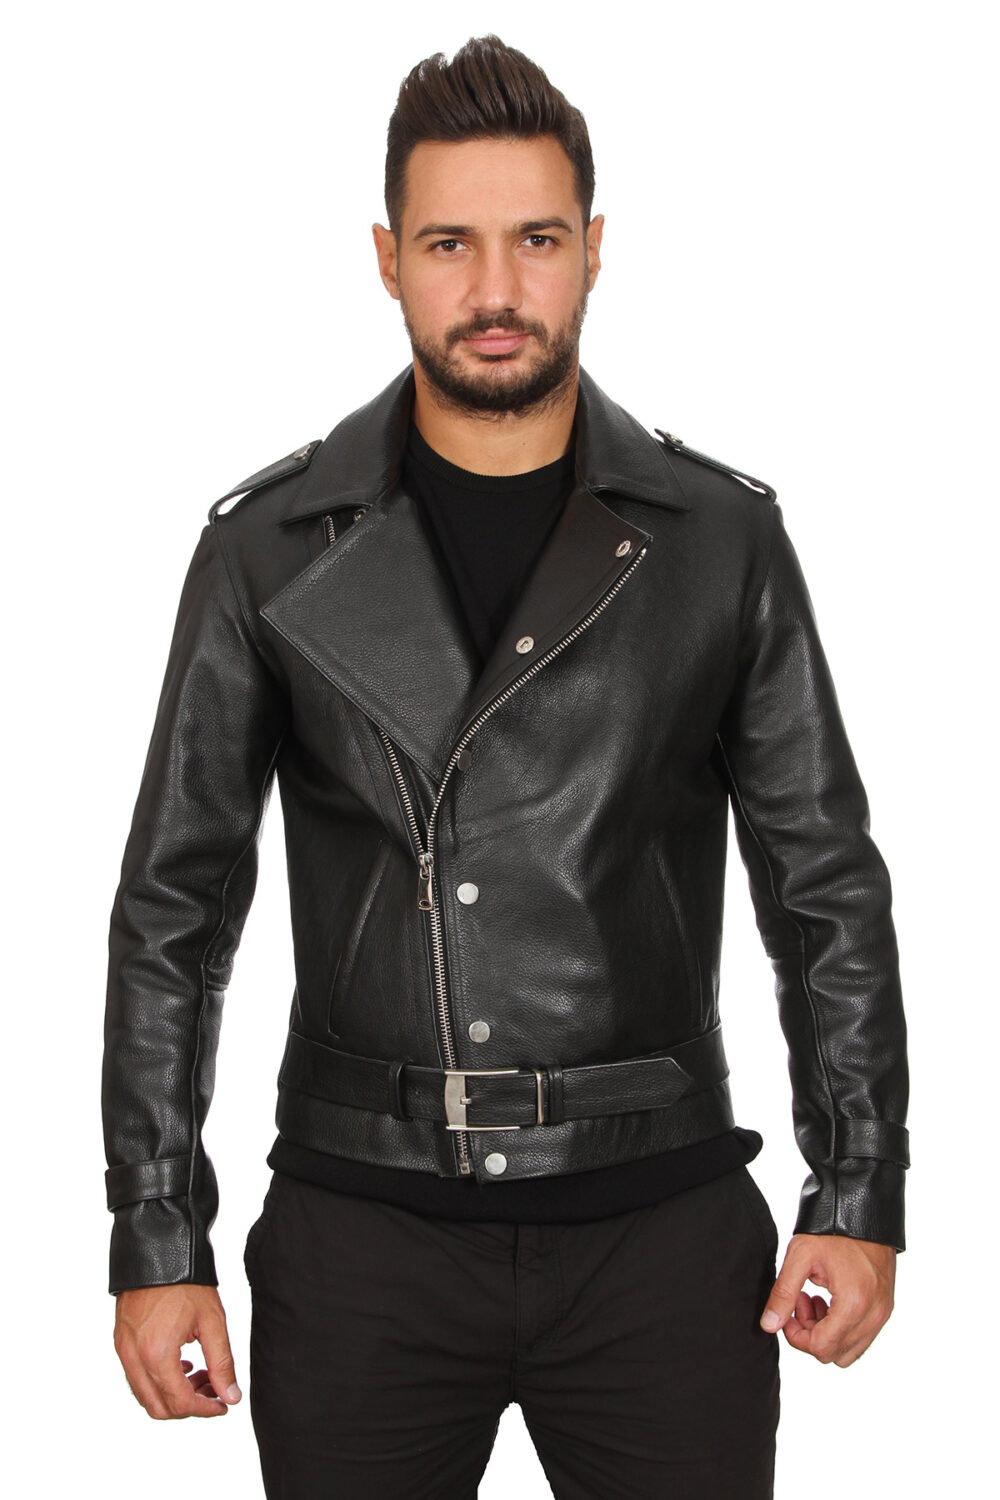 Men's Discount Leather Jackets